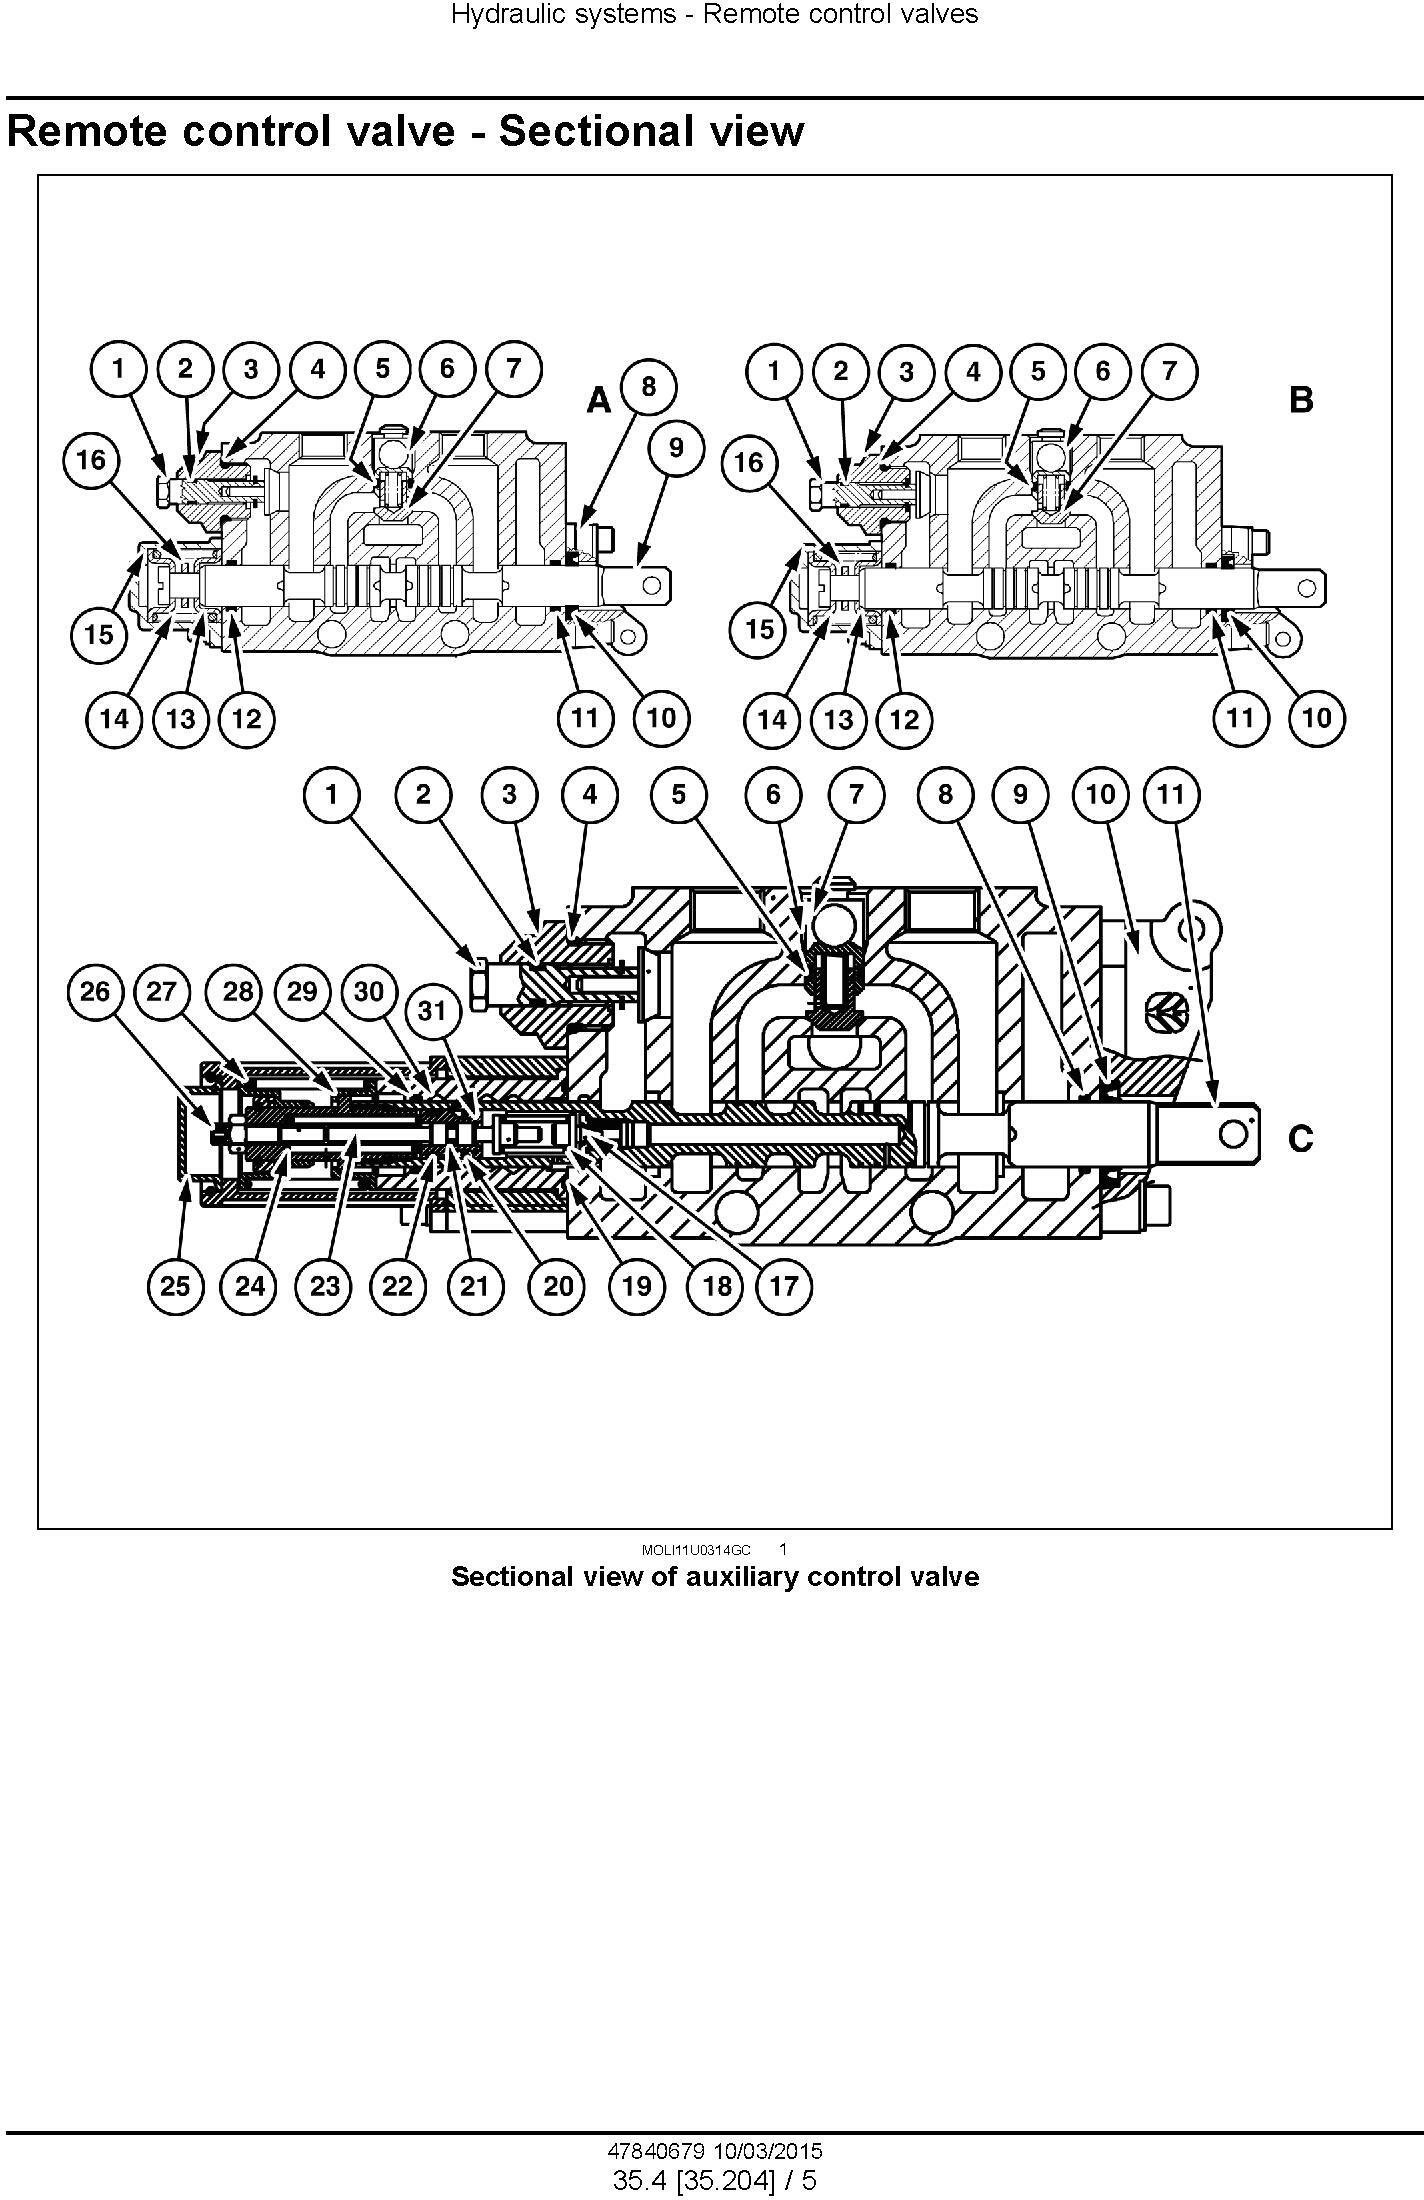 New Holland T4.85, T4.95, T4.105, T4.115 Tractor Complete Service Manual (North America) - 3